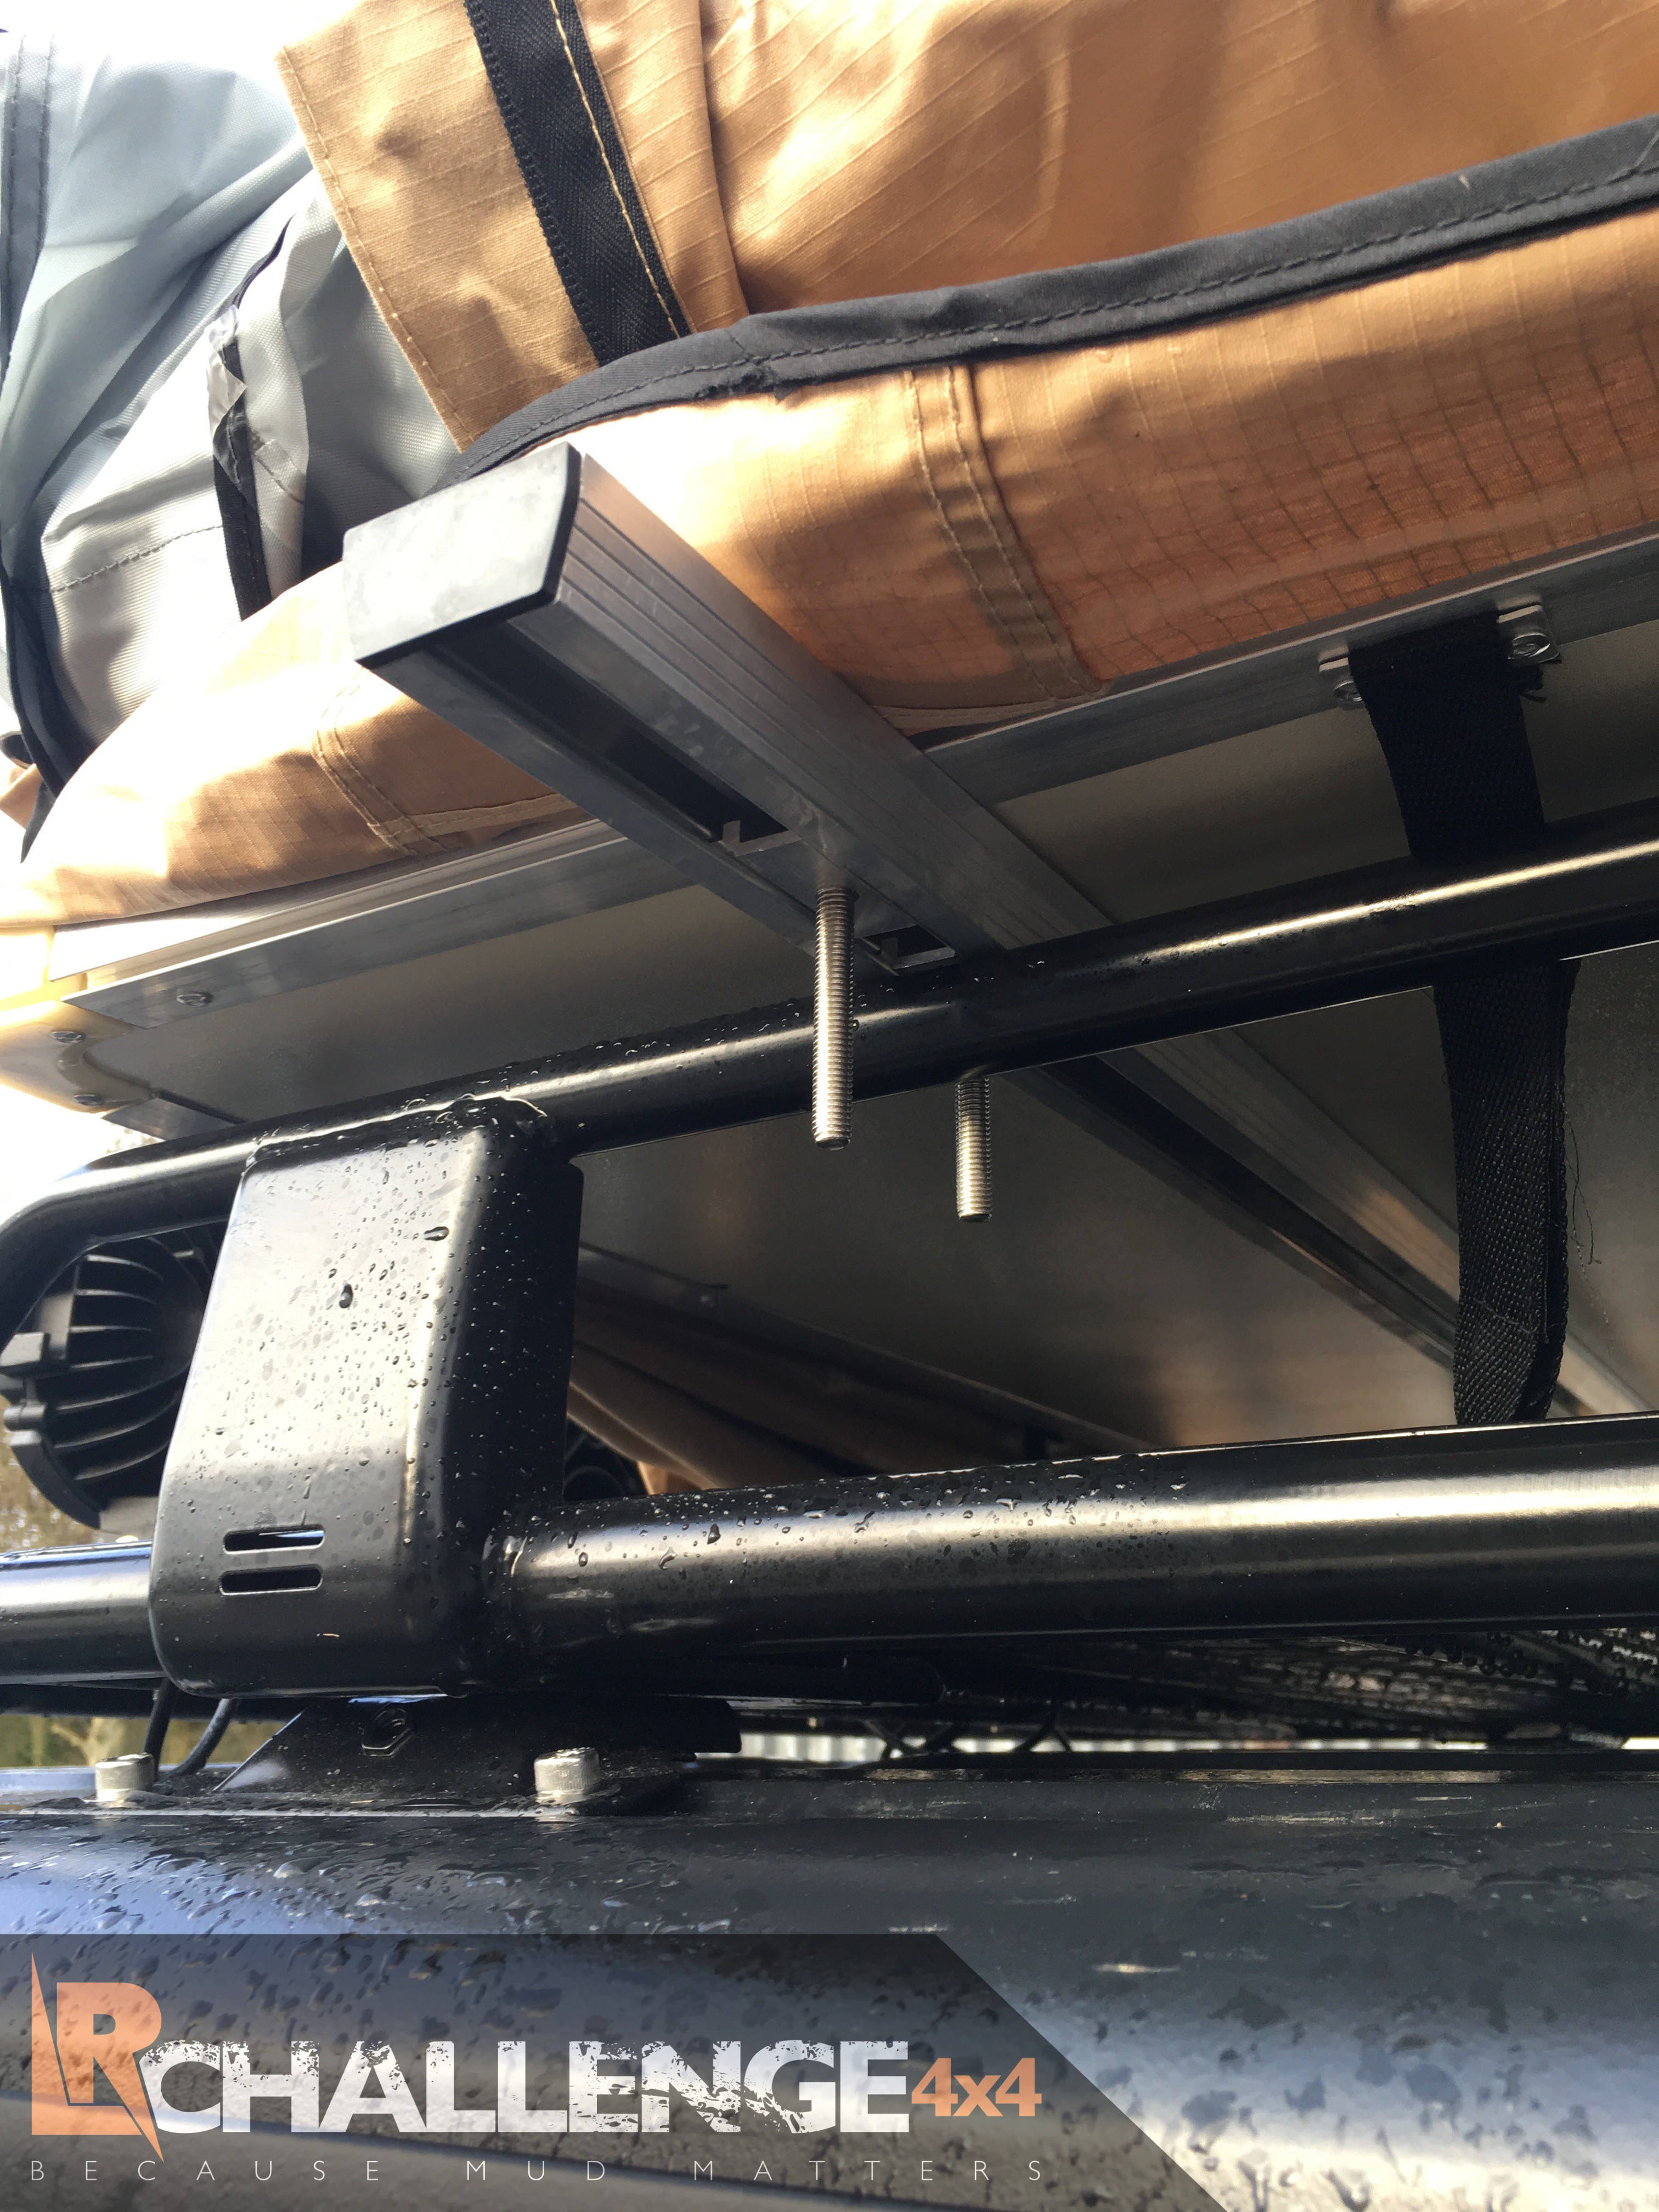 3 Man Roof Tent With Awning, 75mm Mattress and Ladder, Incldes Mountig bars fit any Car van 4x4